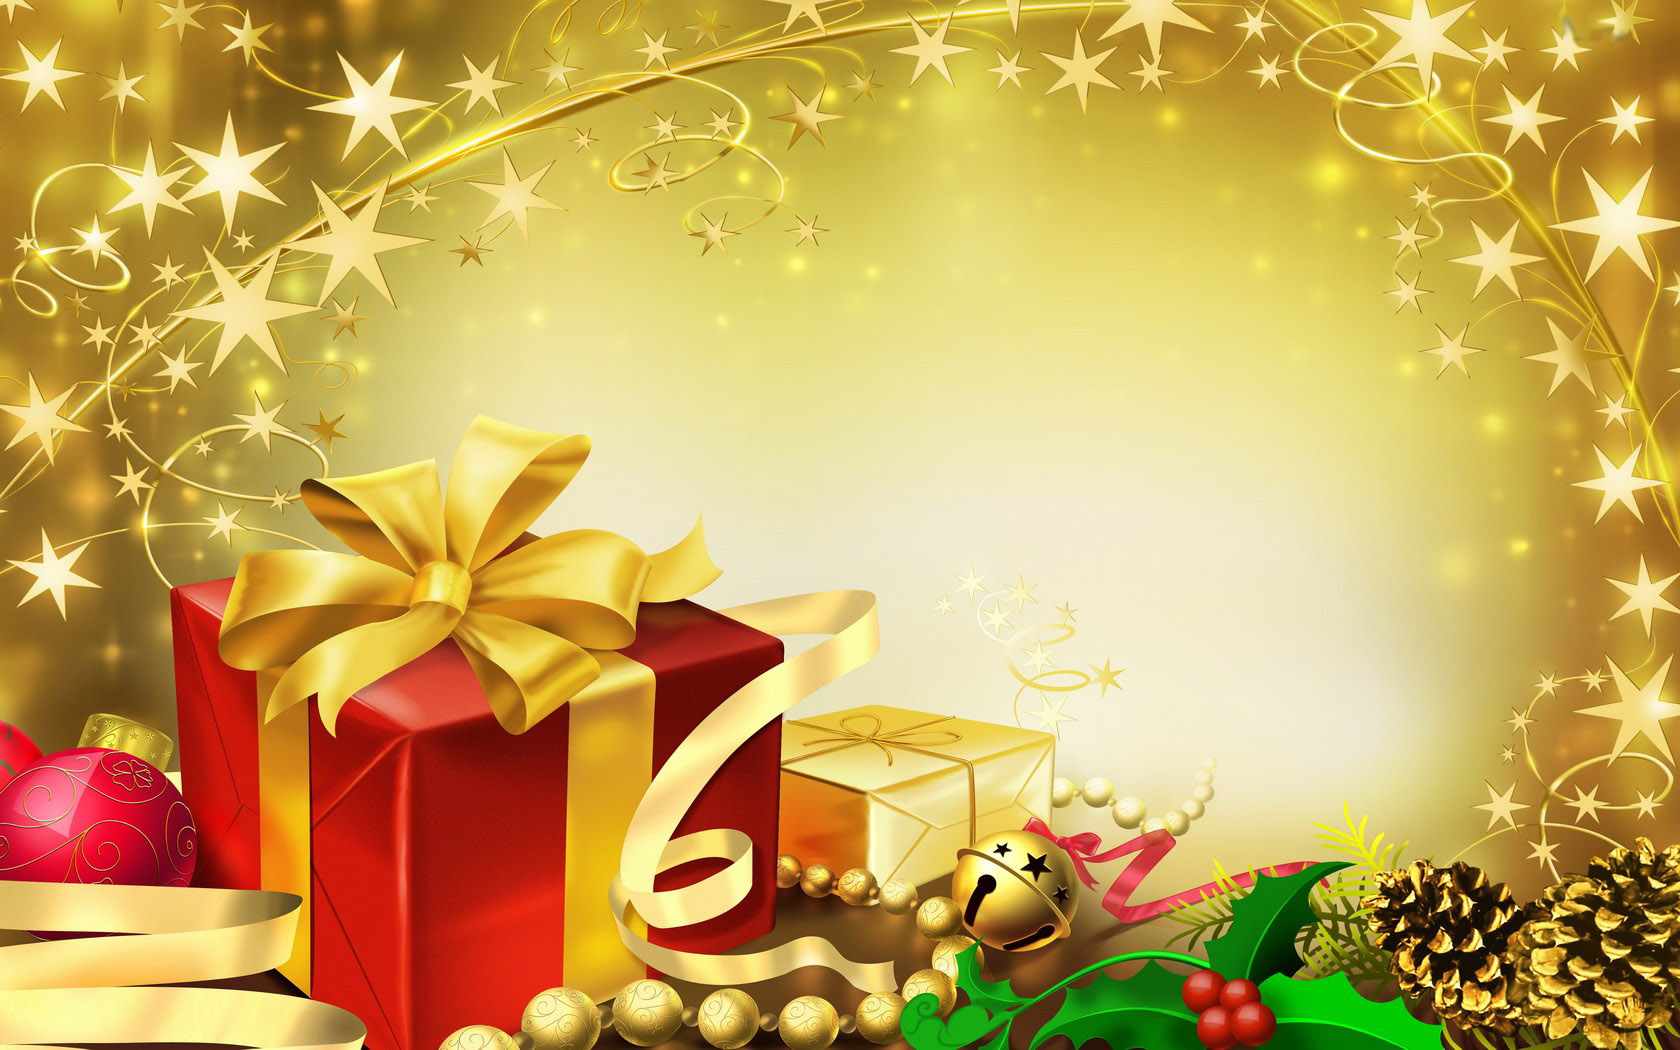 Christmas images gold x mass hd wallpaper and background photos christmas images gold x mass hd wallpaper and background photos m4hsunfo